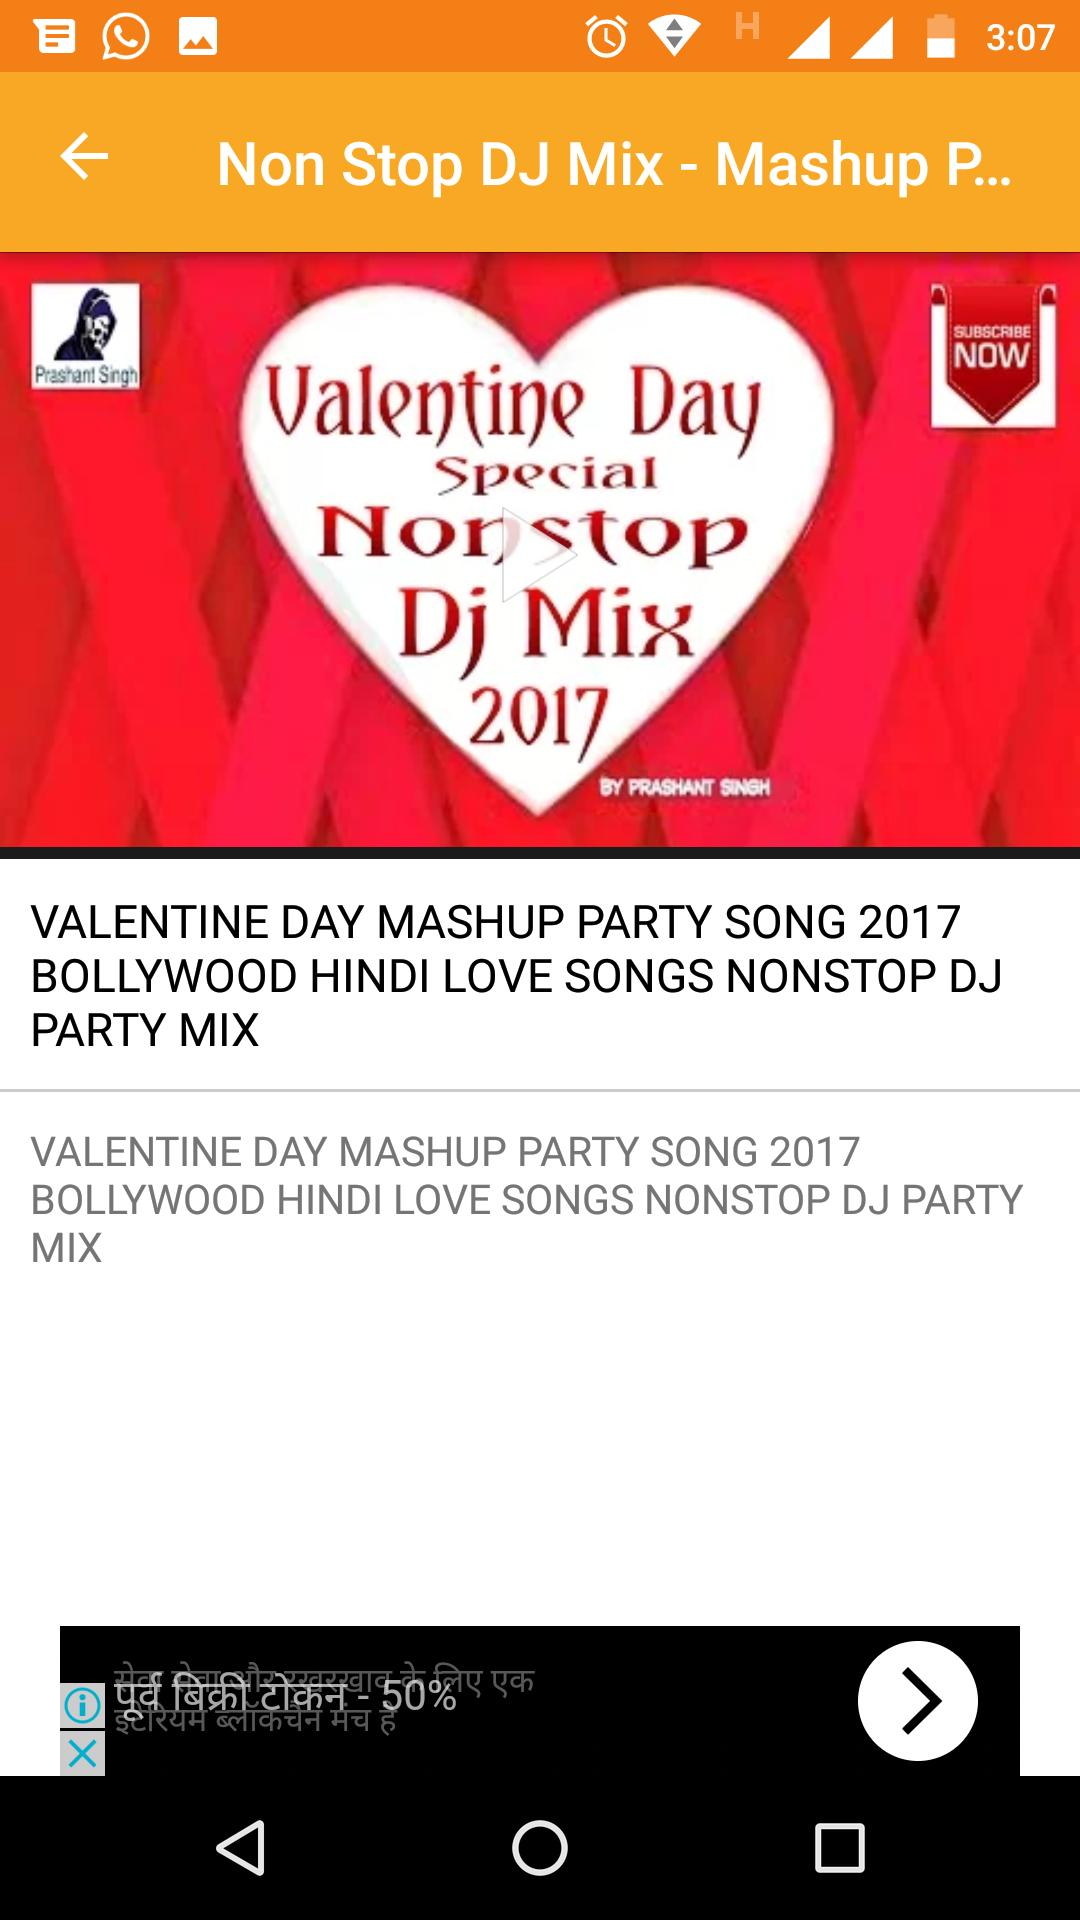 Non Stop DJ Mix - Mashup Party Songs Videos for Android